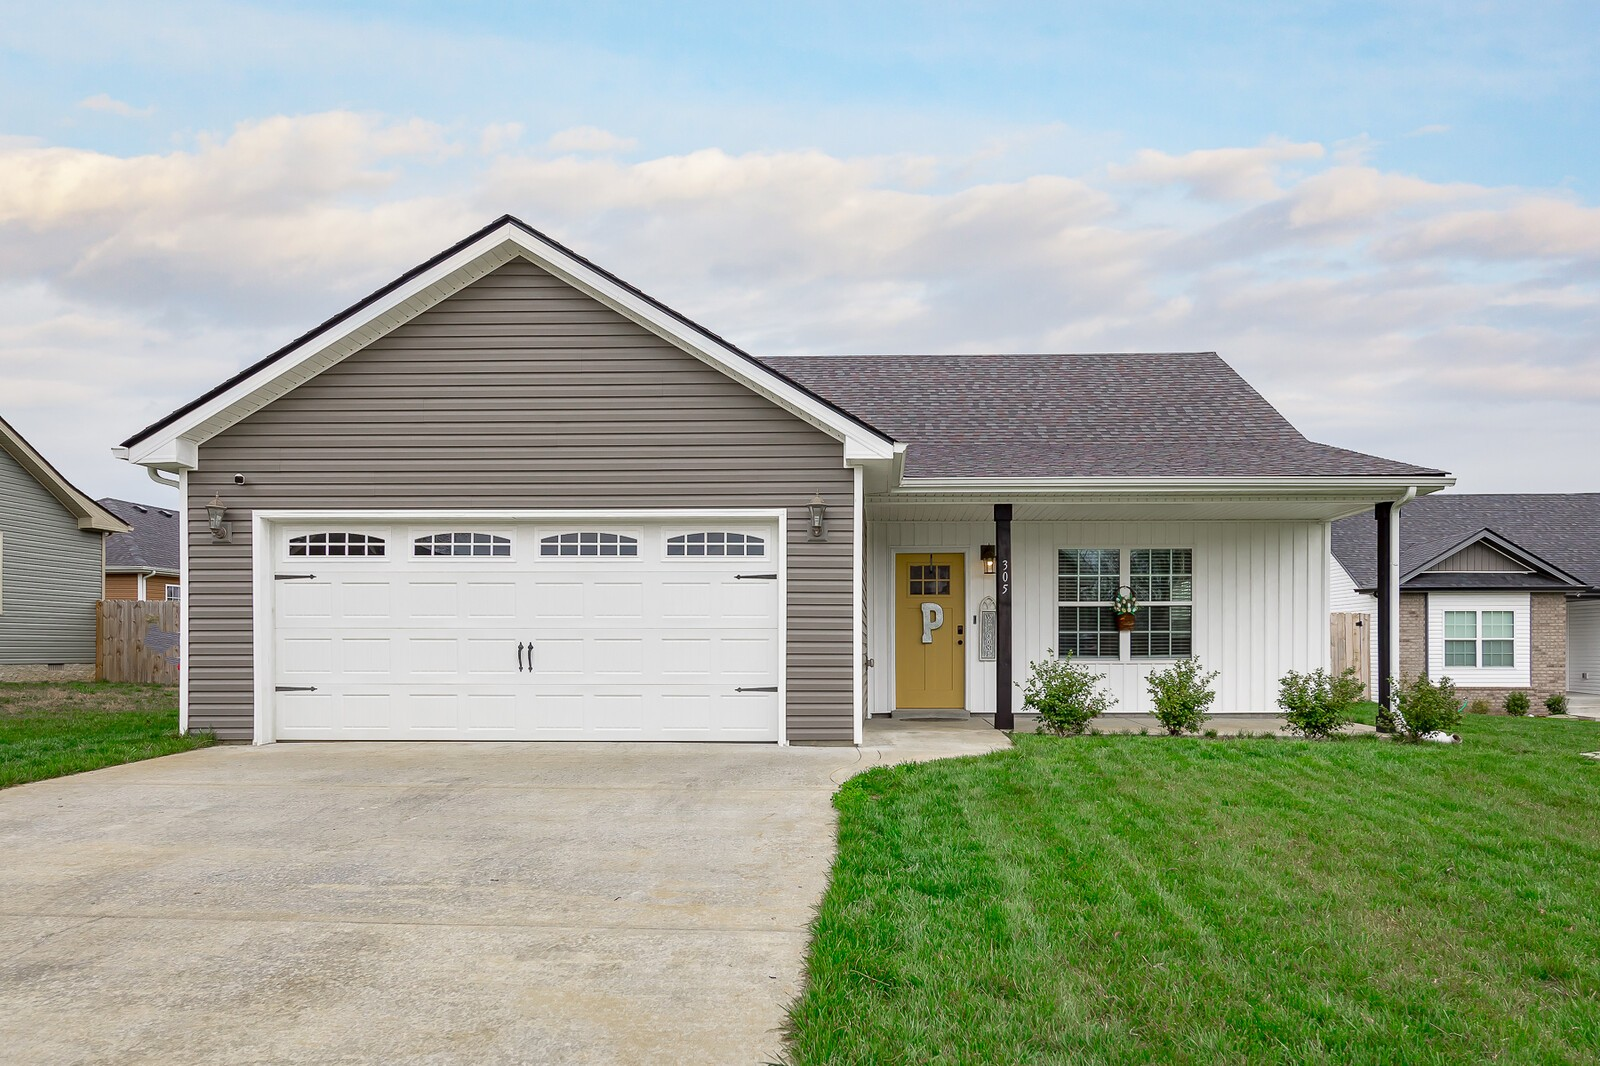 305 Liberty Bell Ln Property Photo - Clarksville, TN real estate listing